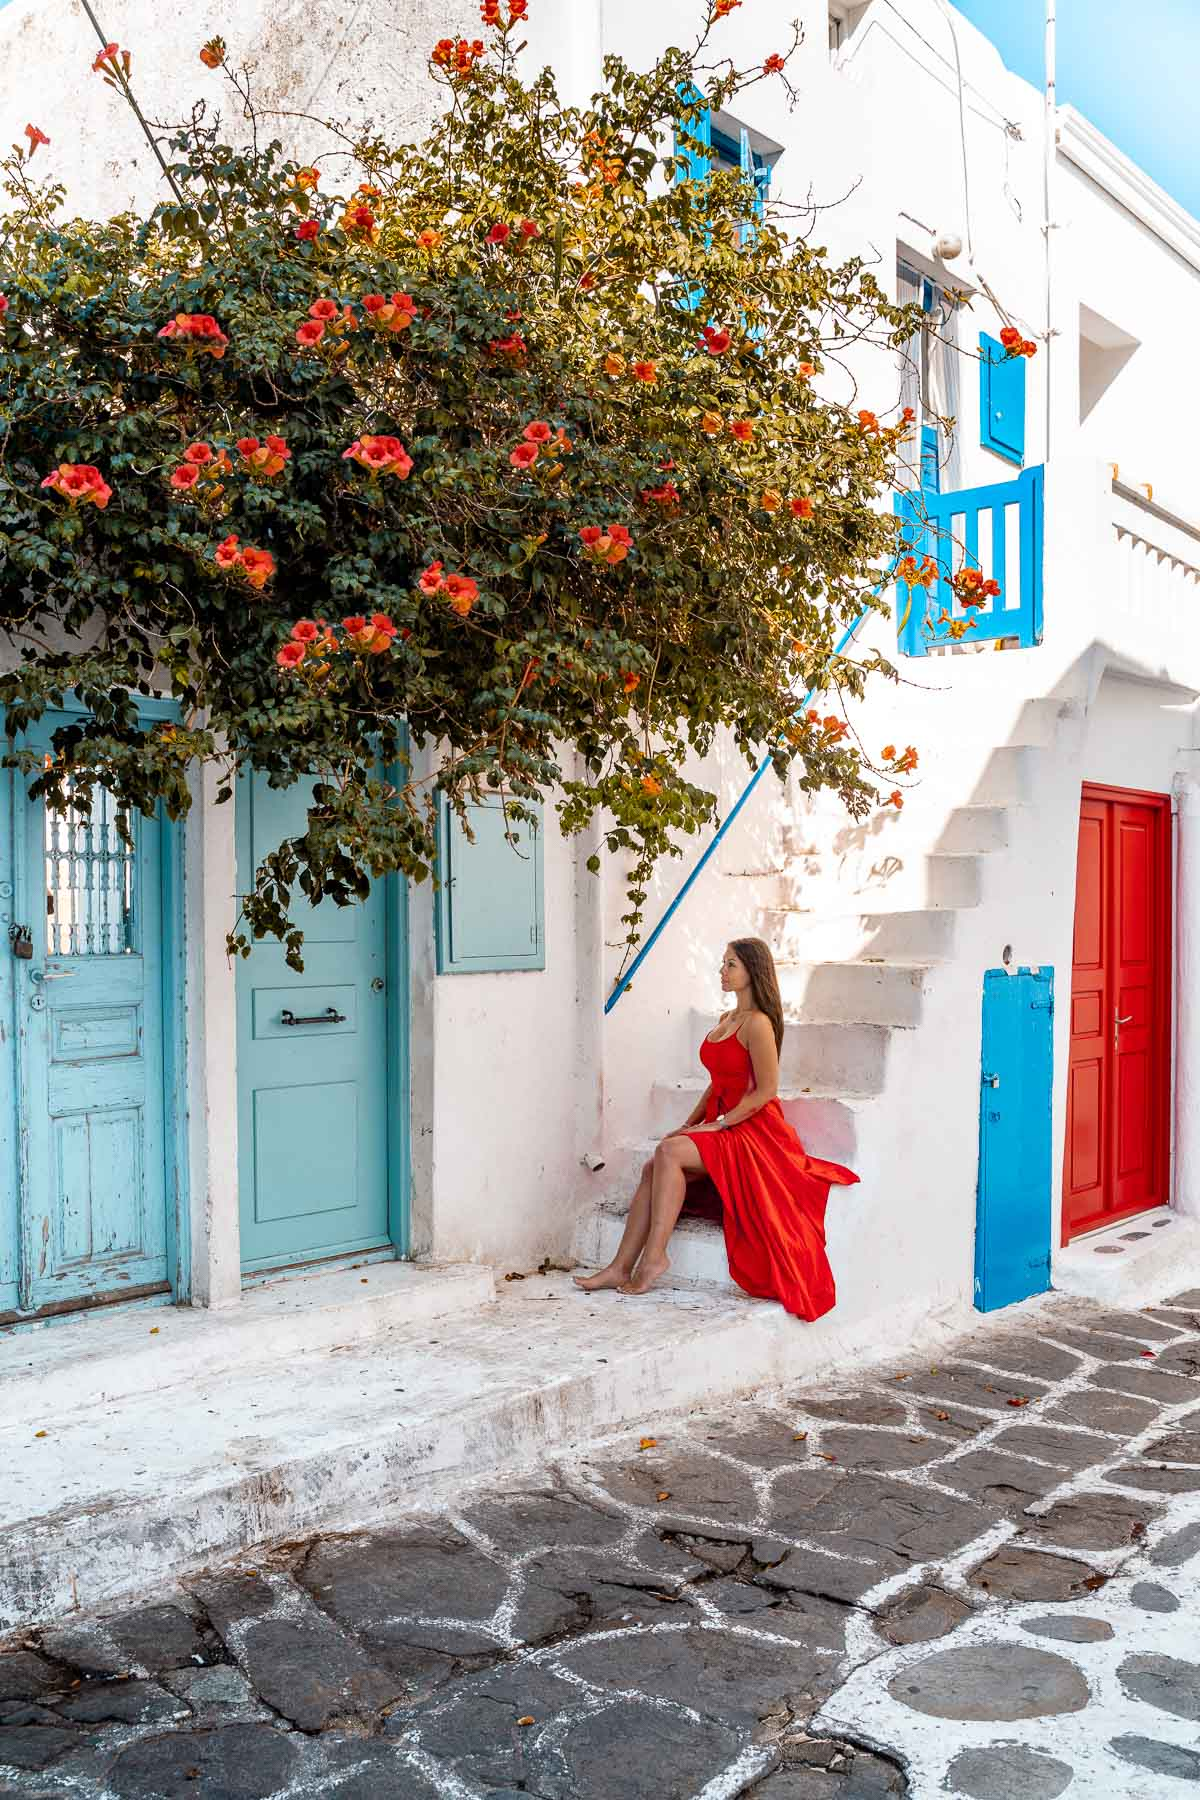 Girl in a red dress sitting on a stair at the turquoise door in Mykonos